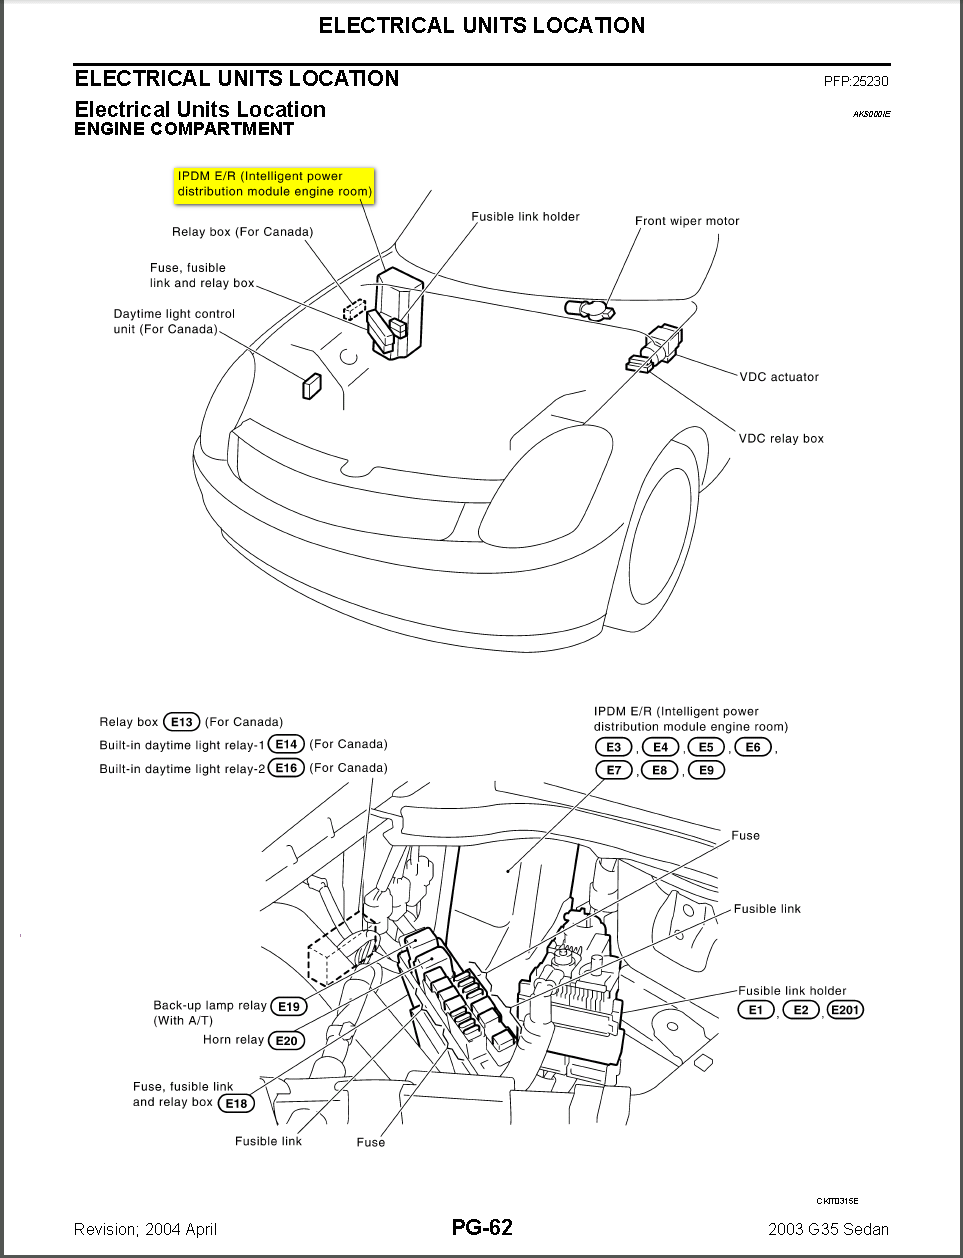 how do i disable the air conditioning on my 2003 infiniti ... infiniti g35 coupe wiring diagram infiniti g35 ac wiring diagram #2